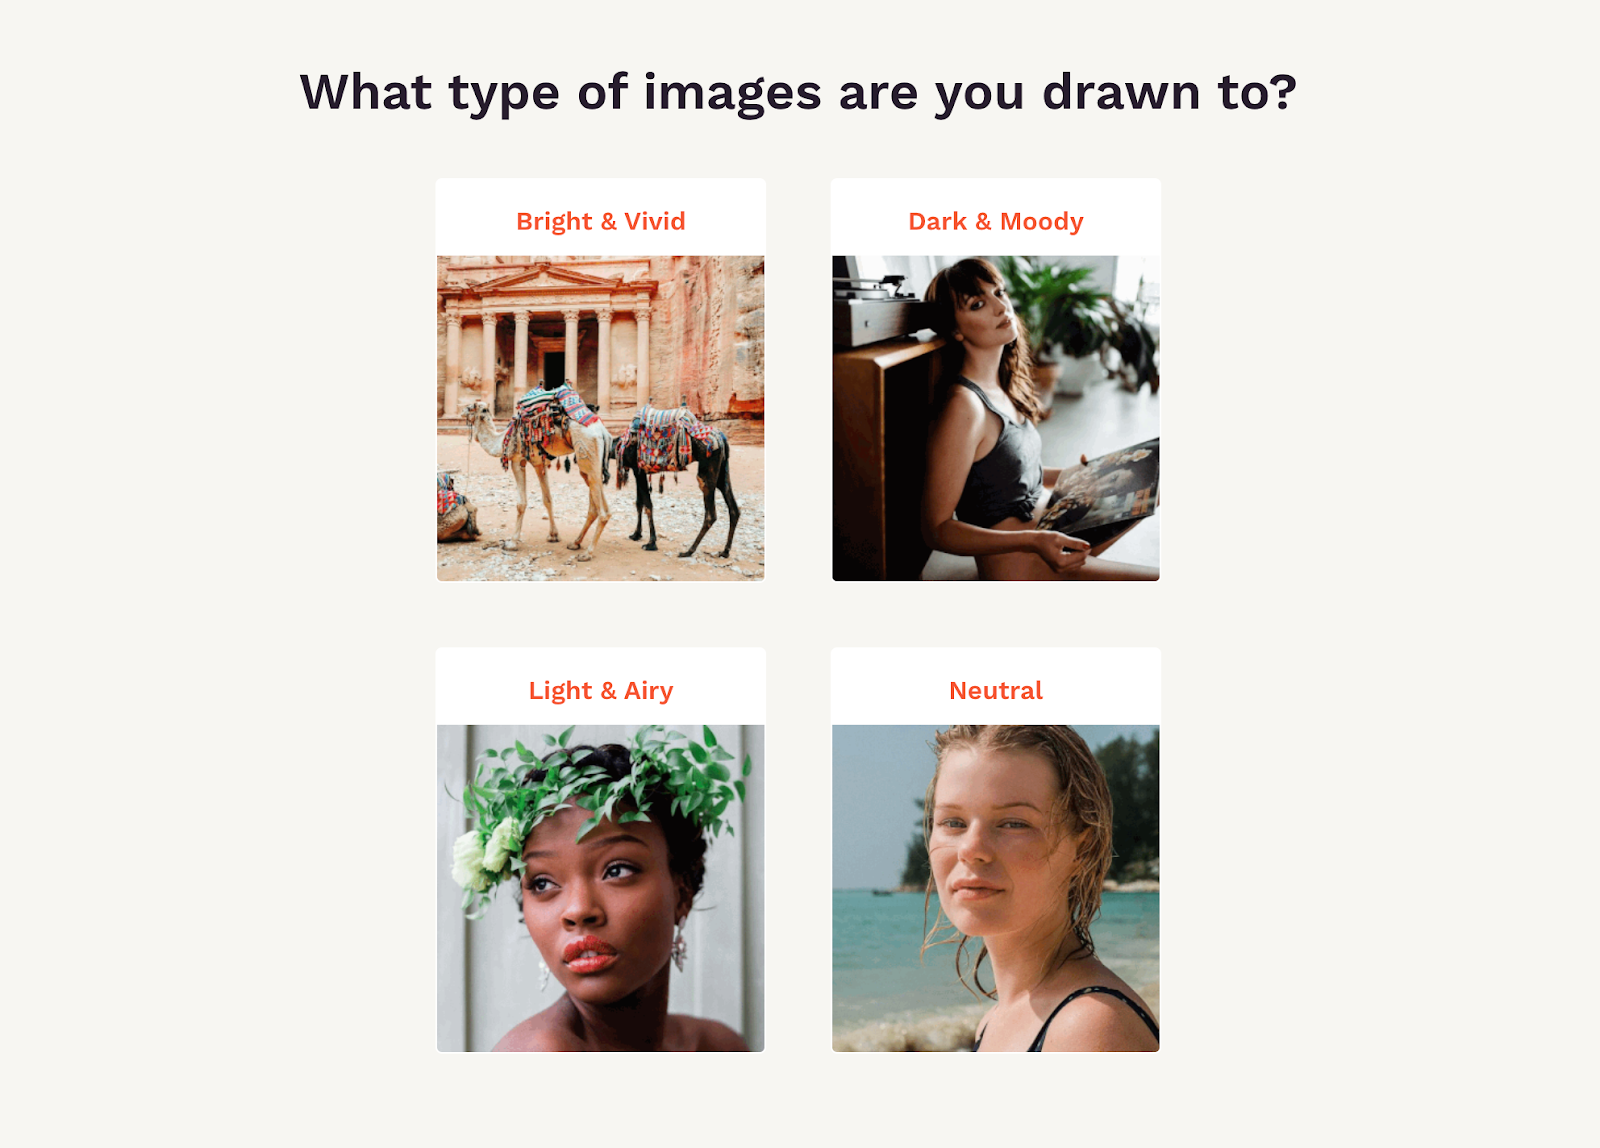 Quiz question asking what type of image a customer is drawn to the most